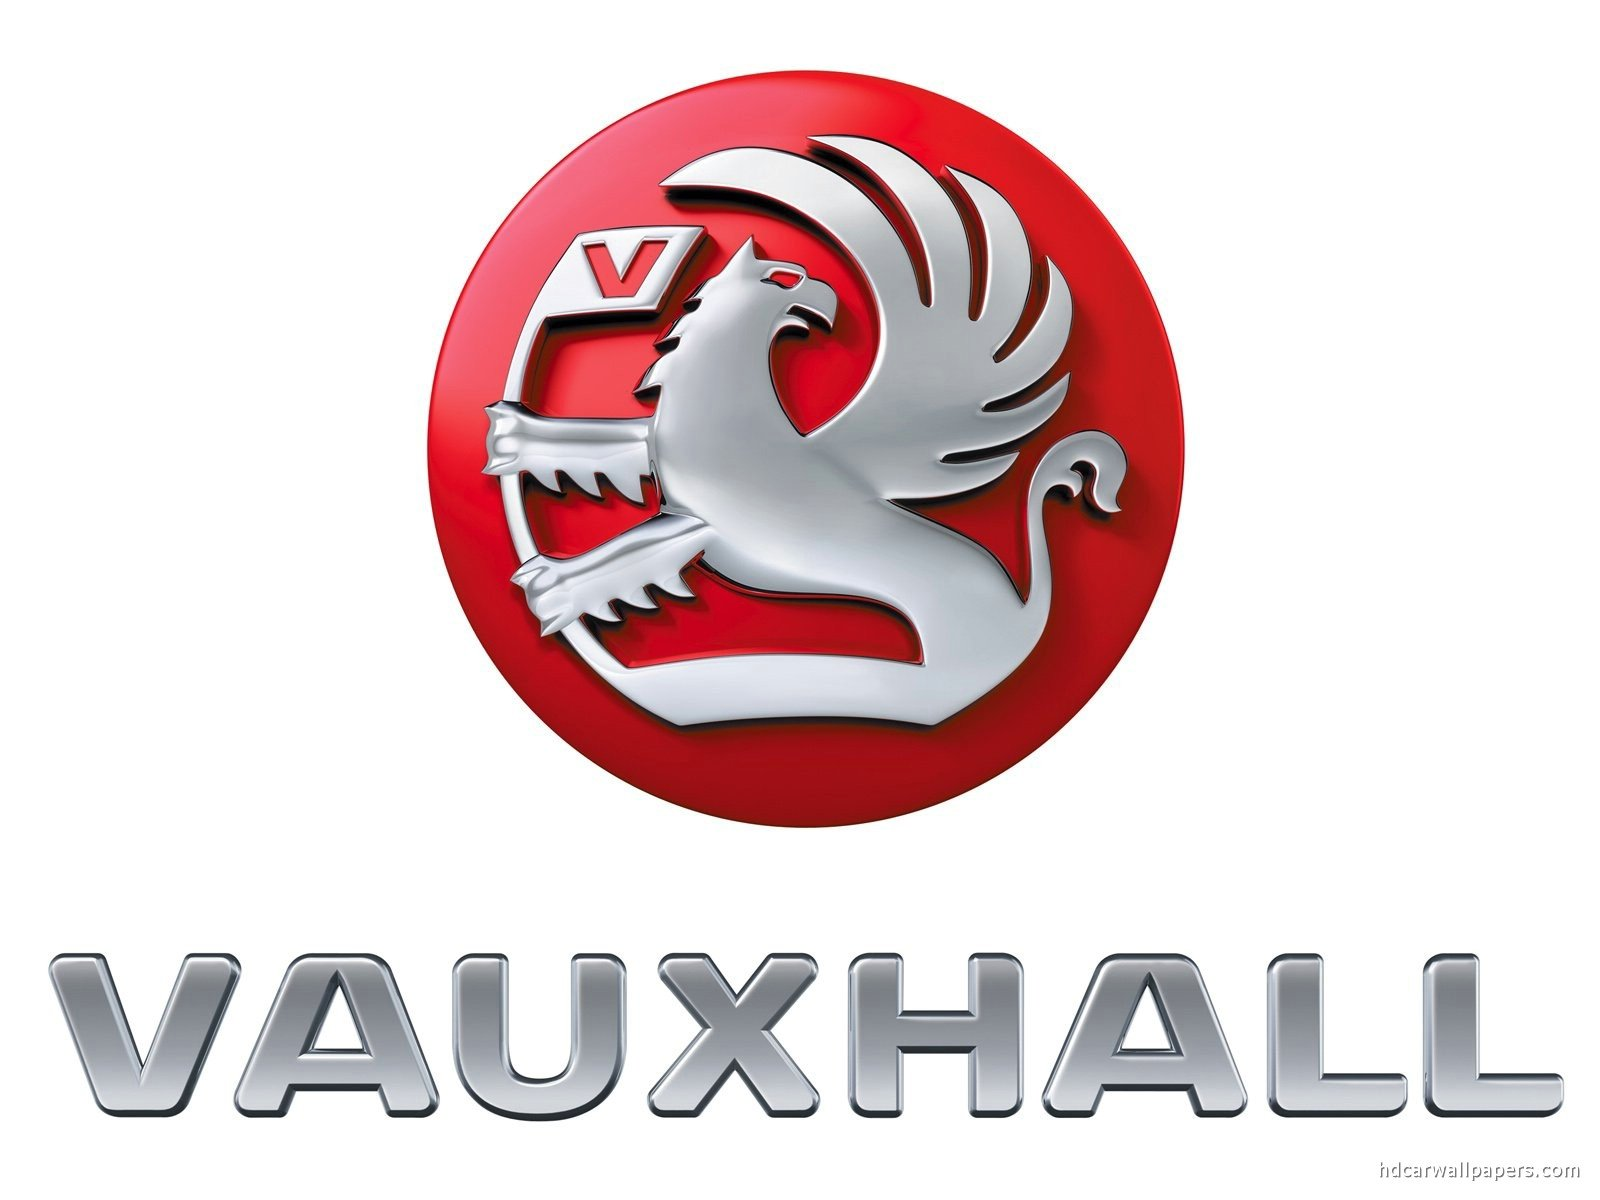 1600x1200 - Vauxhall Wallpapers 26